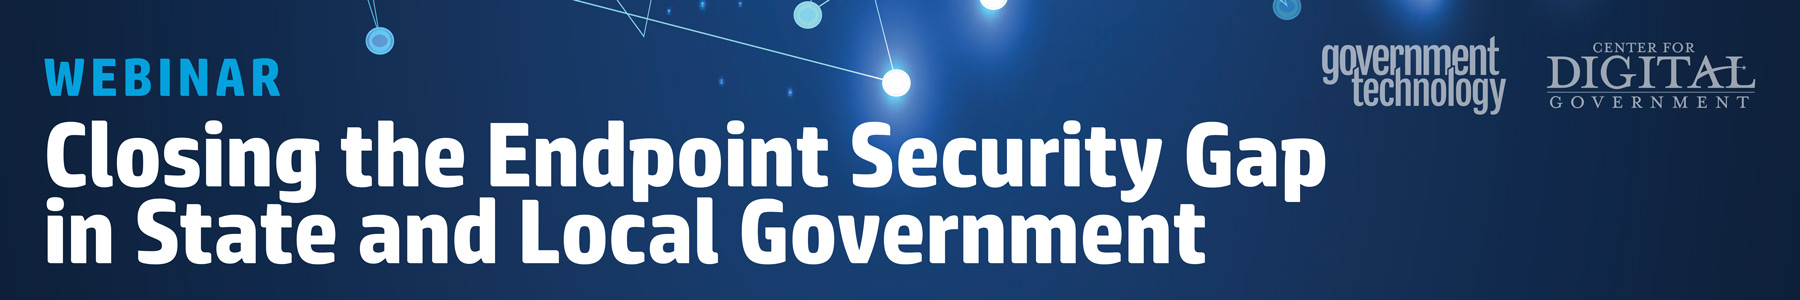 Closing the Endpoint Security Gap in State and Local Government